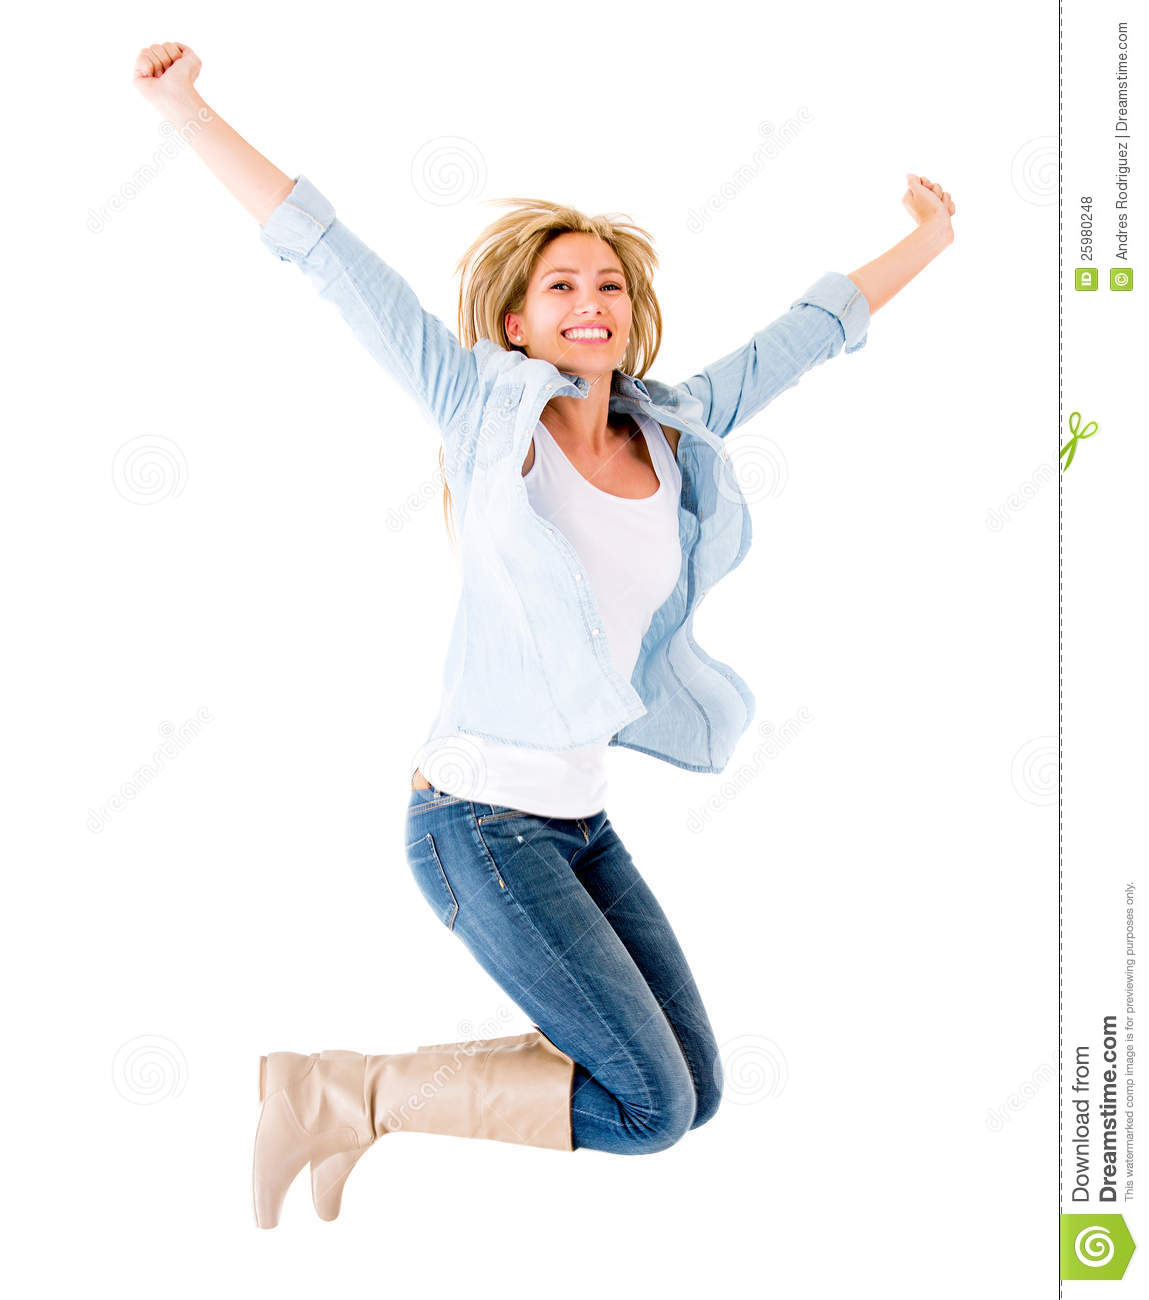 happy-woman-jumping-25980248.jpg